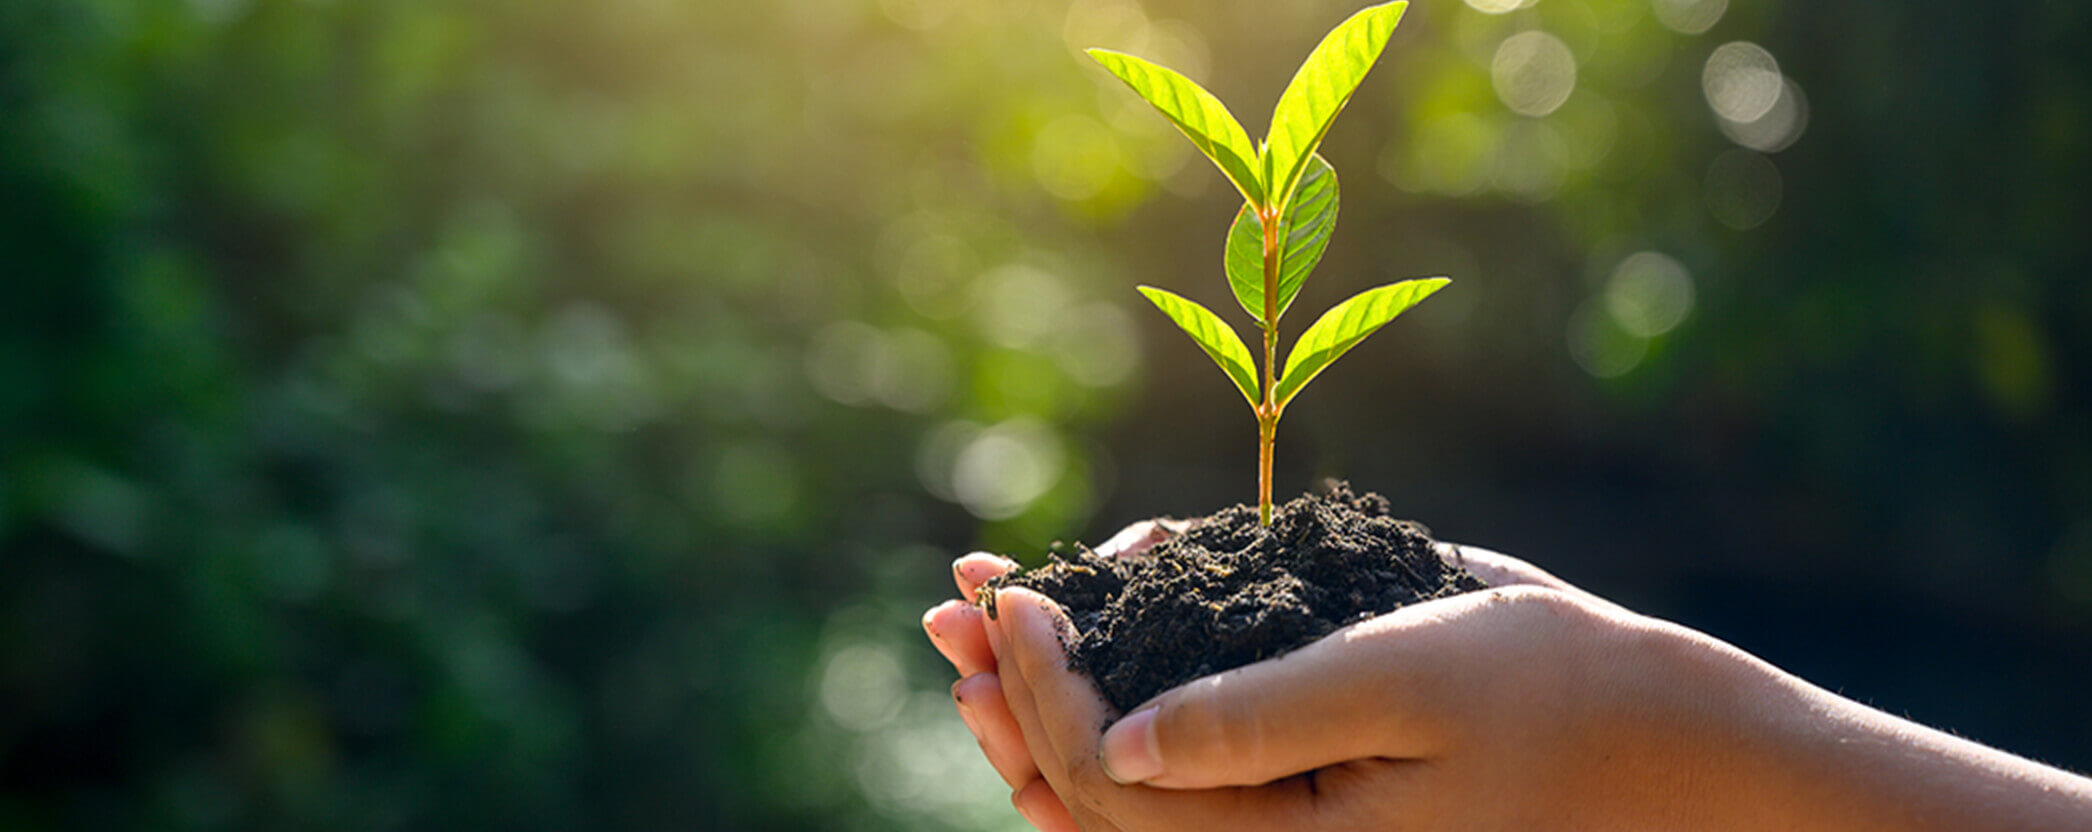 An hand holding a tree sapling in soil with sunshine.